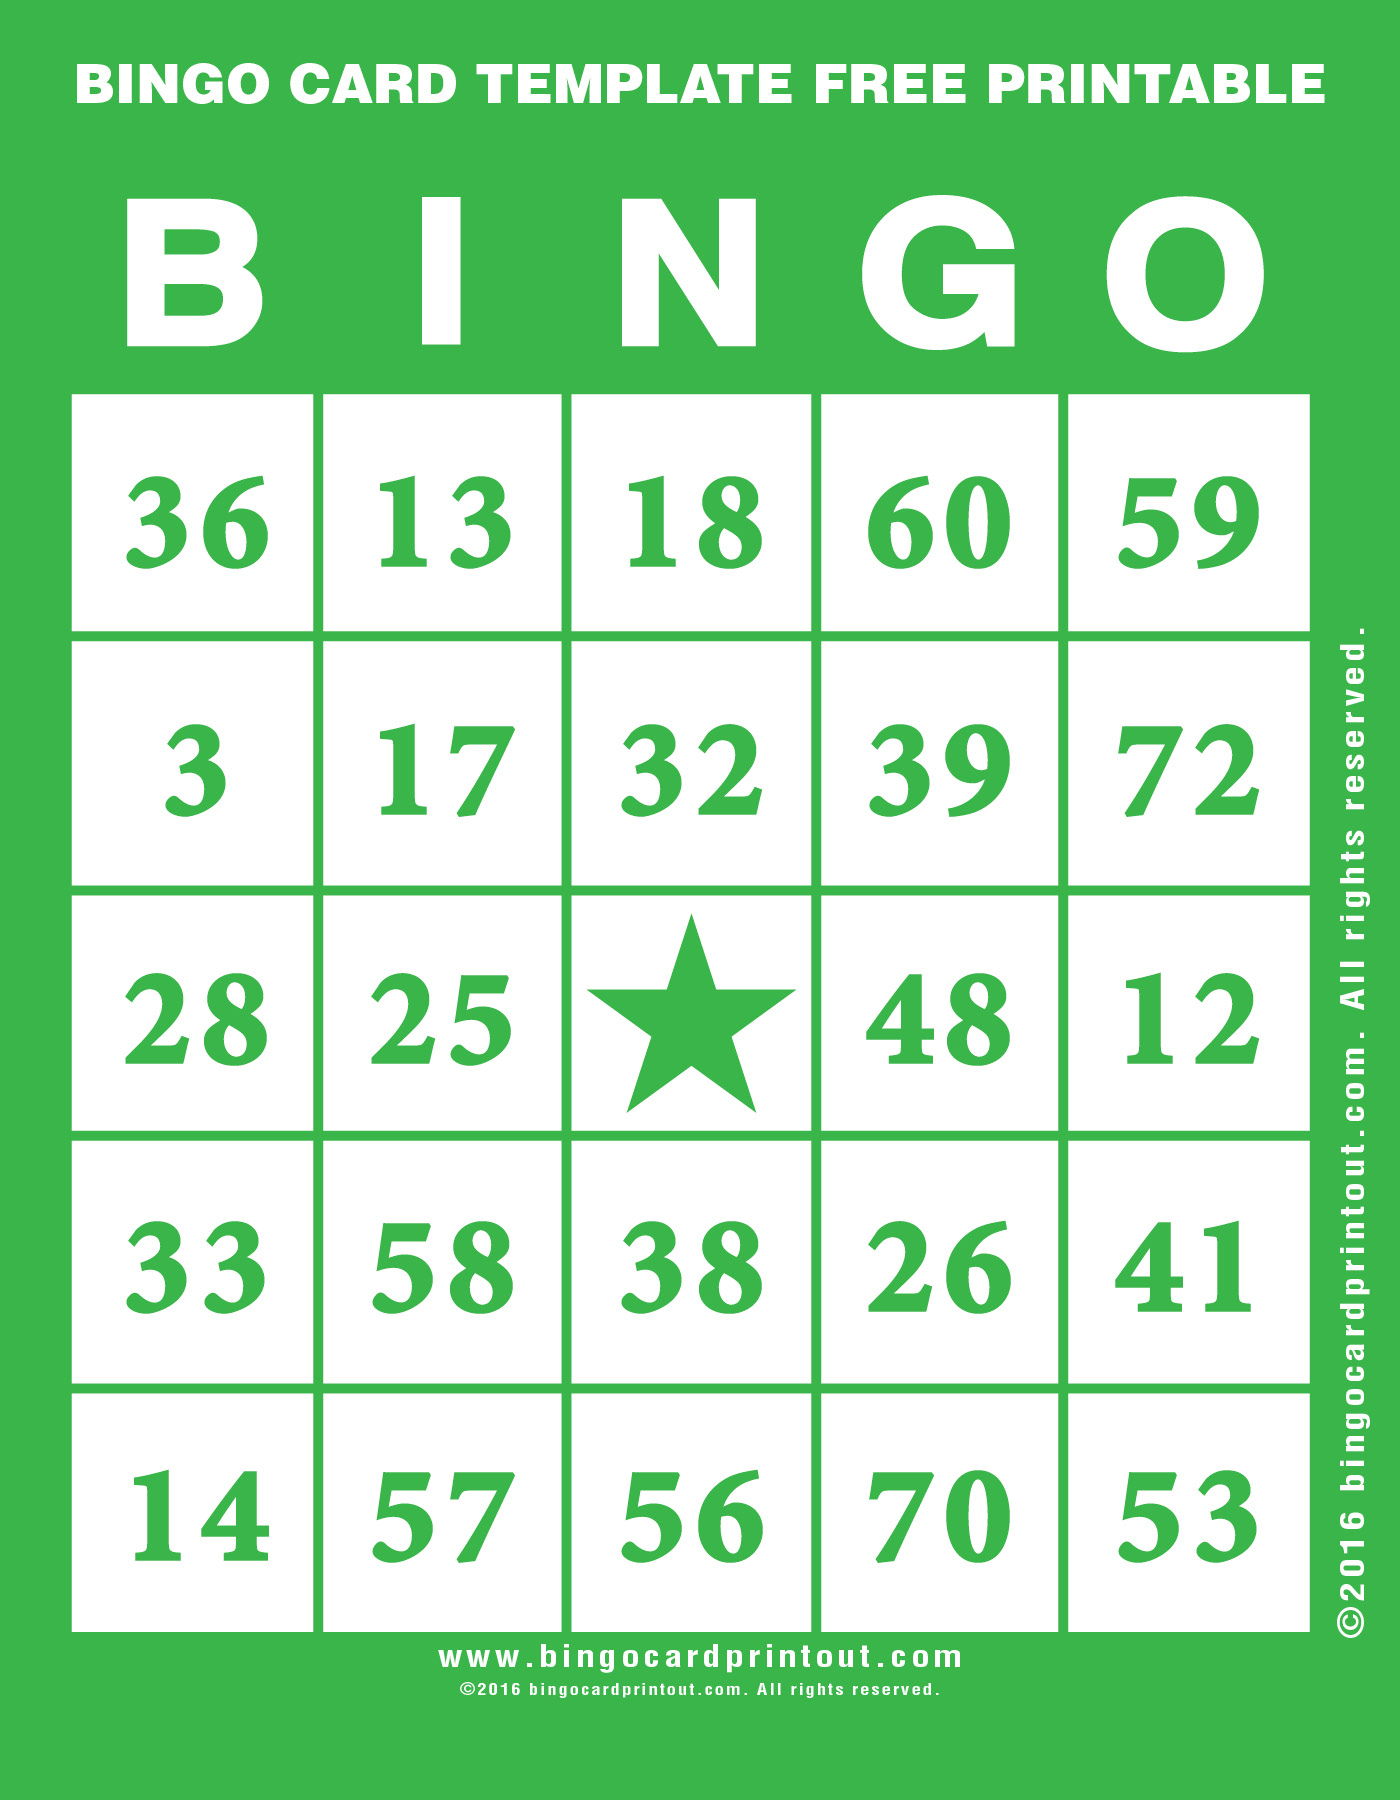 Bingo Card Template Free Printable - Bingocardprintout - Free Printable Bingo Cards For Large Groups